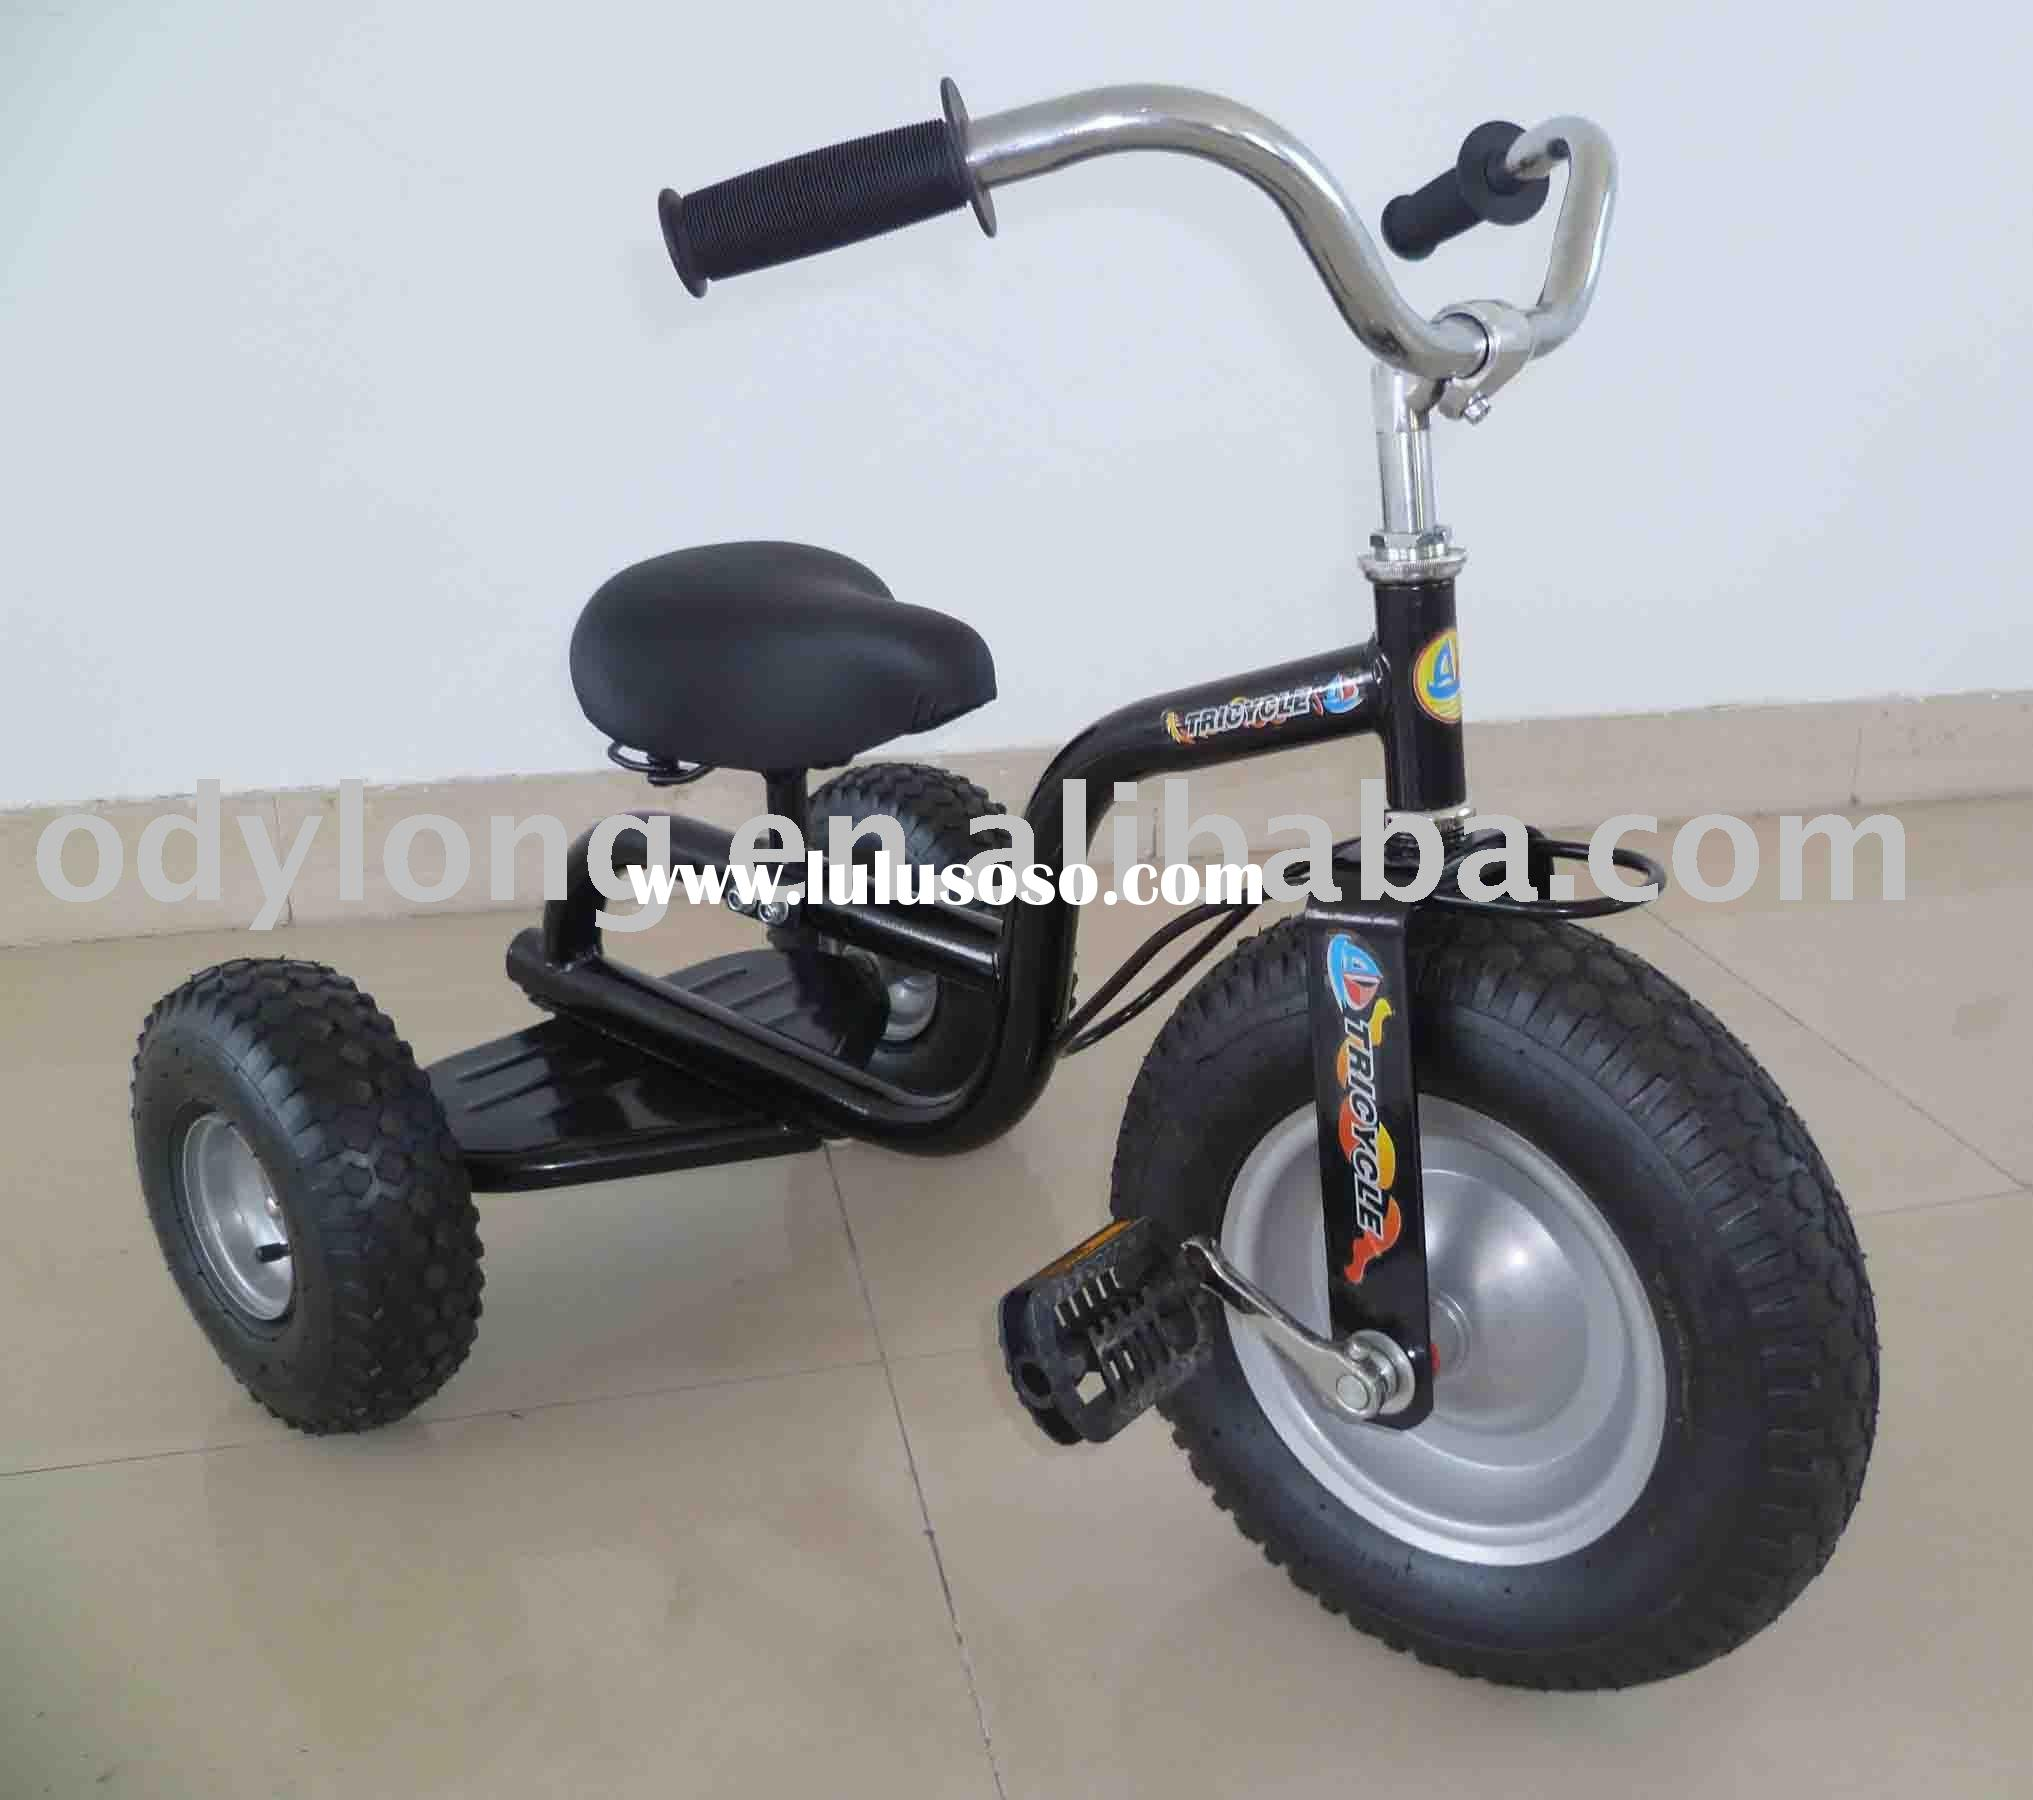 3 wheels toy tricycle for kids,fitness toy kart from china